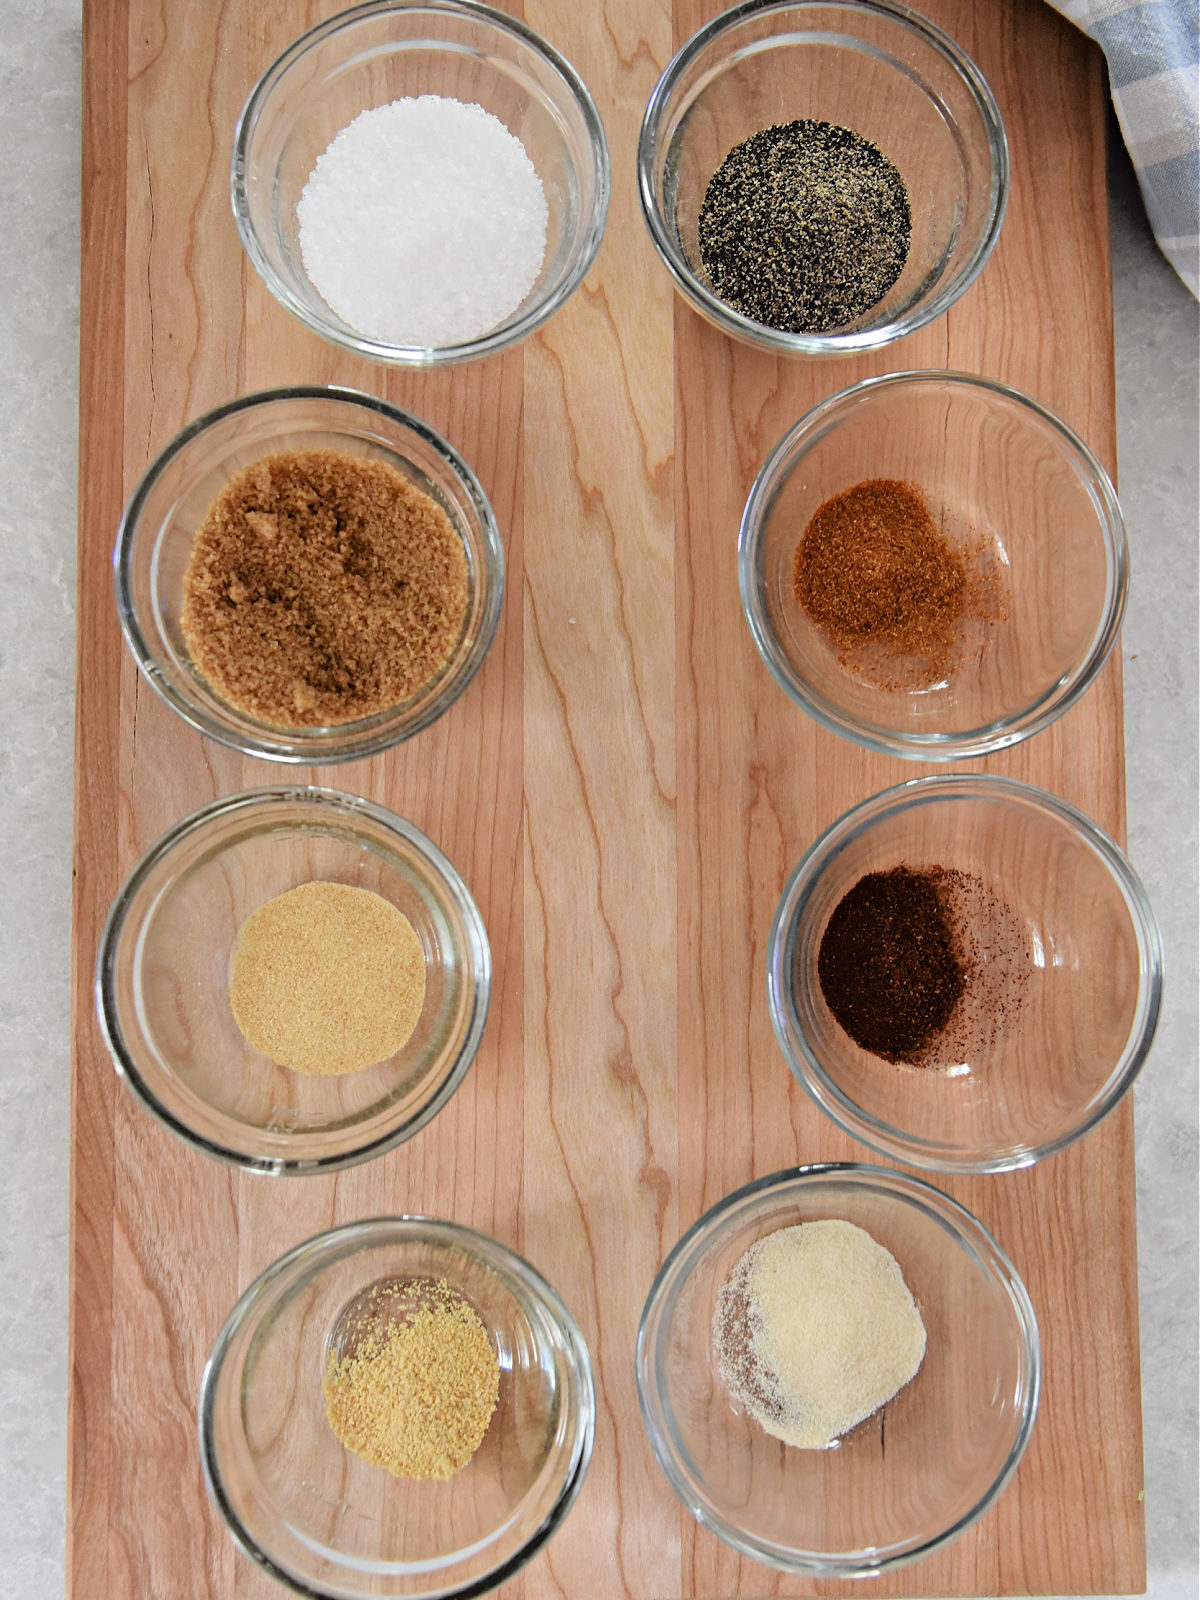 Spices in small glass bowls on top of a wooden cutting board.